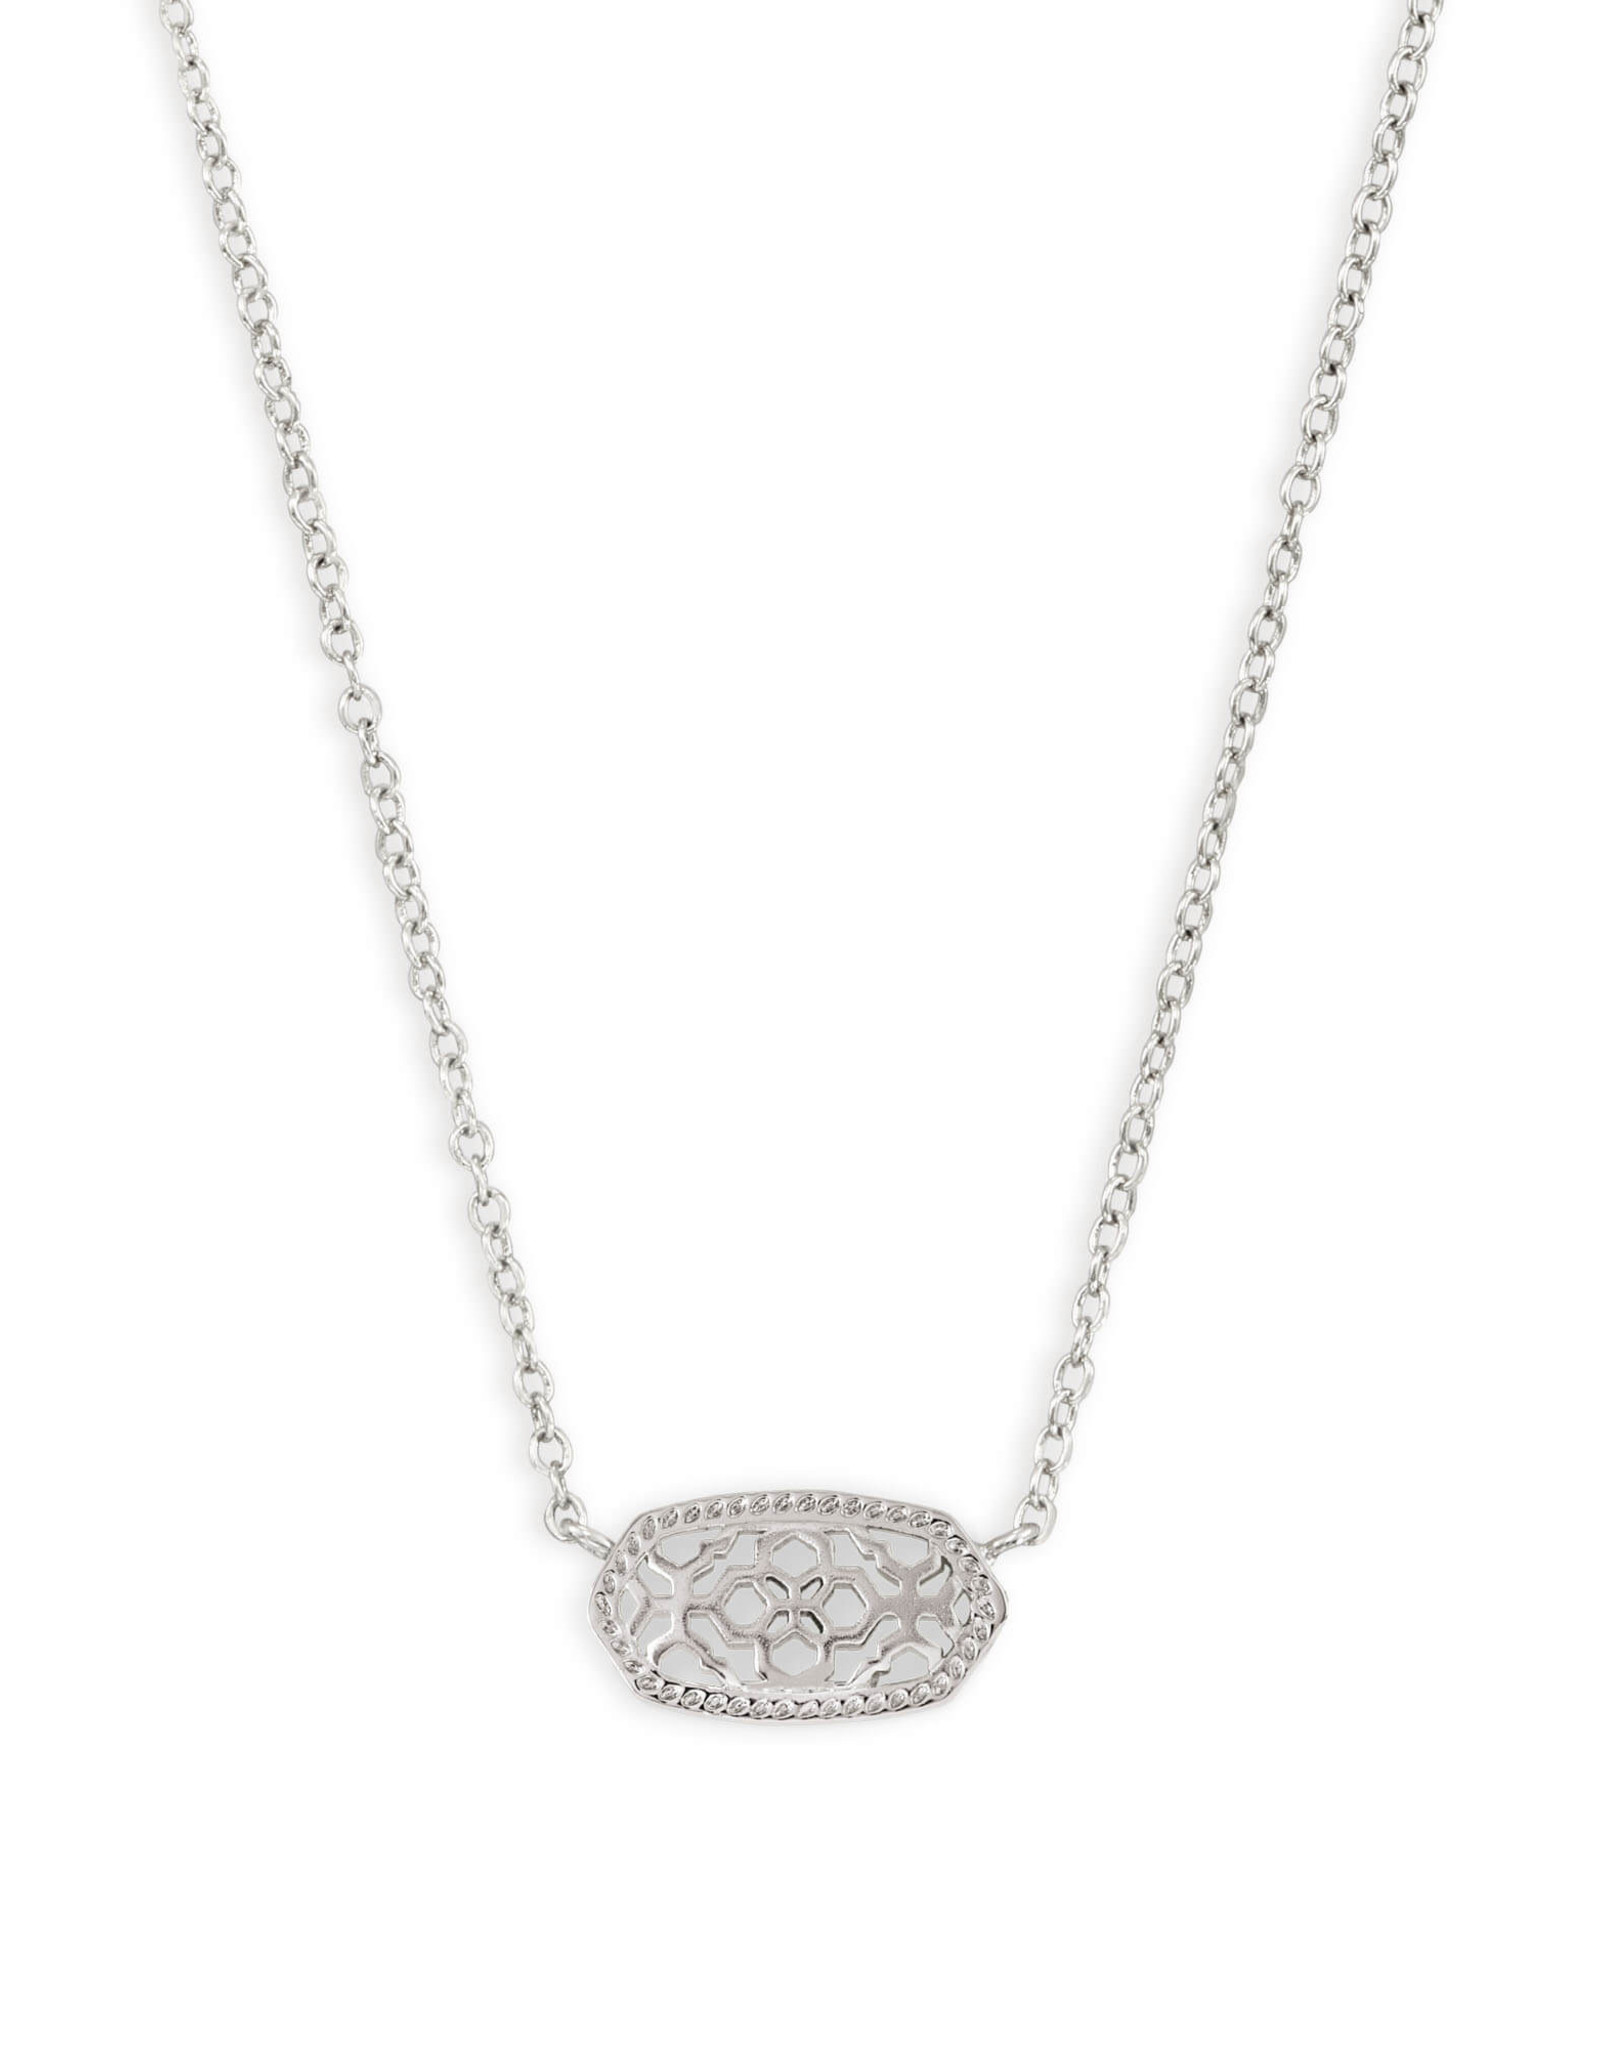 Kendra Scott Elisa Necklace - Rhodium/Rhodium